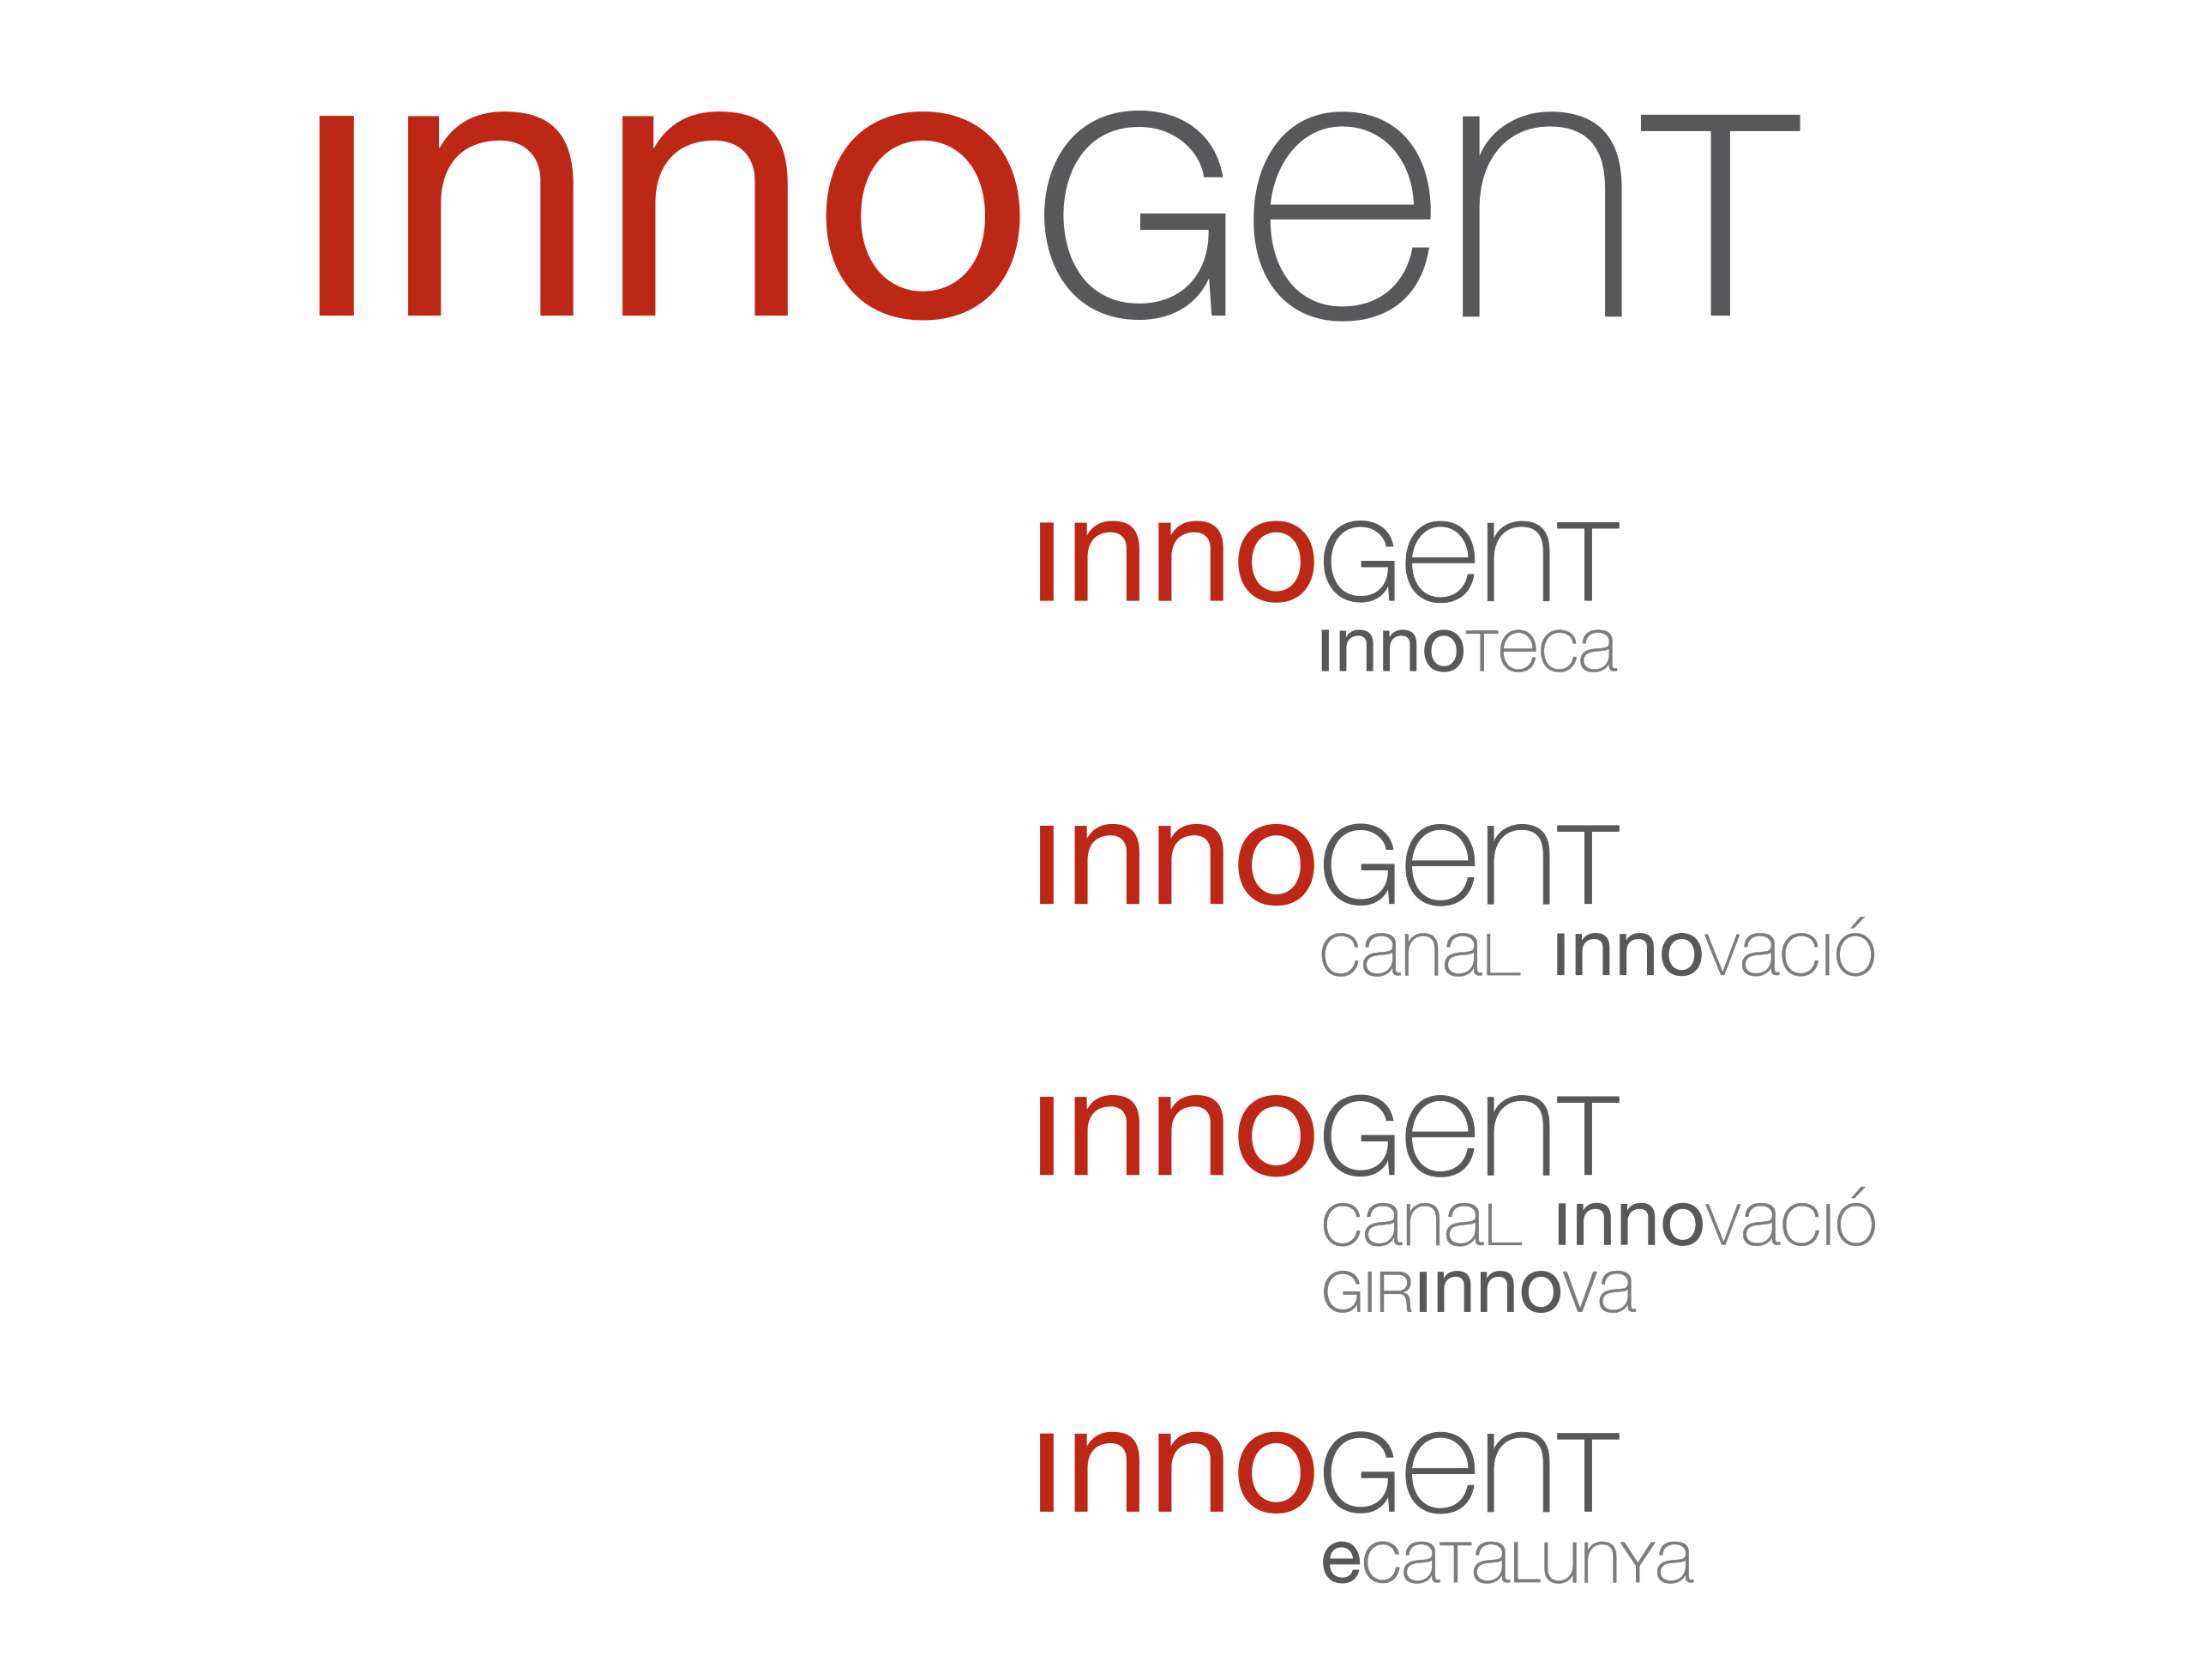 ic_innogent.indd